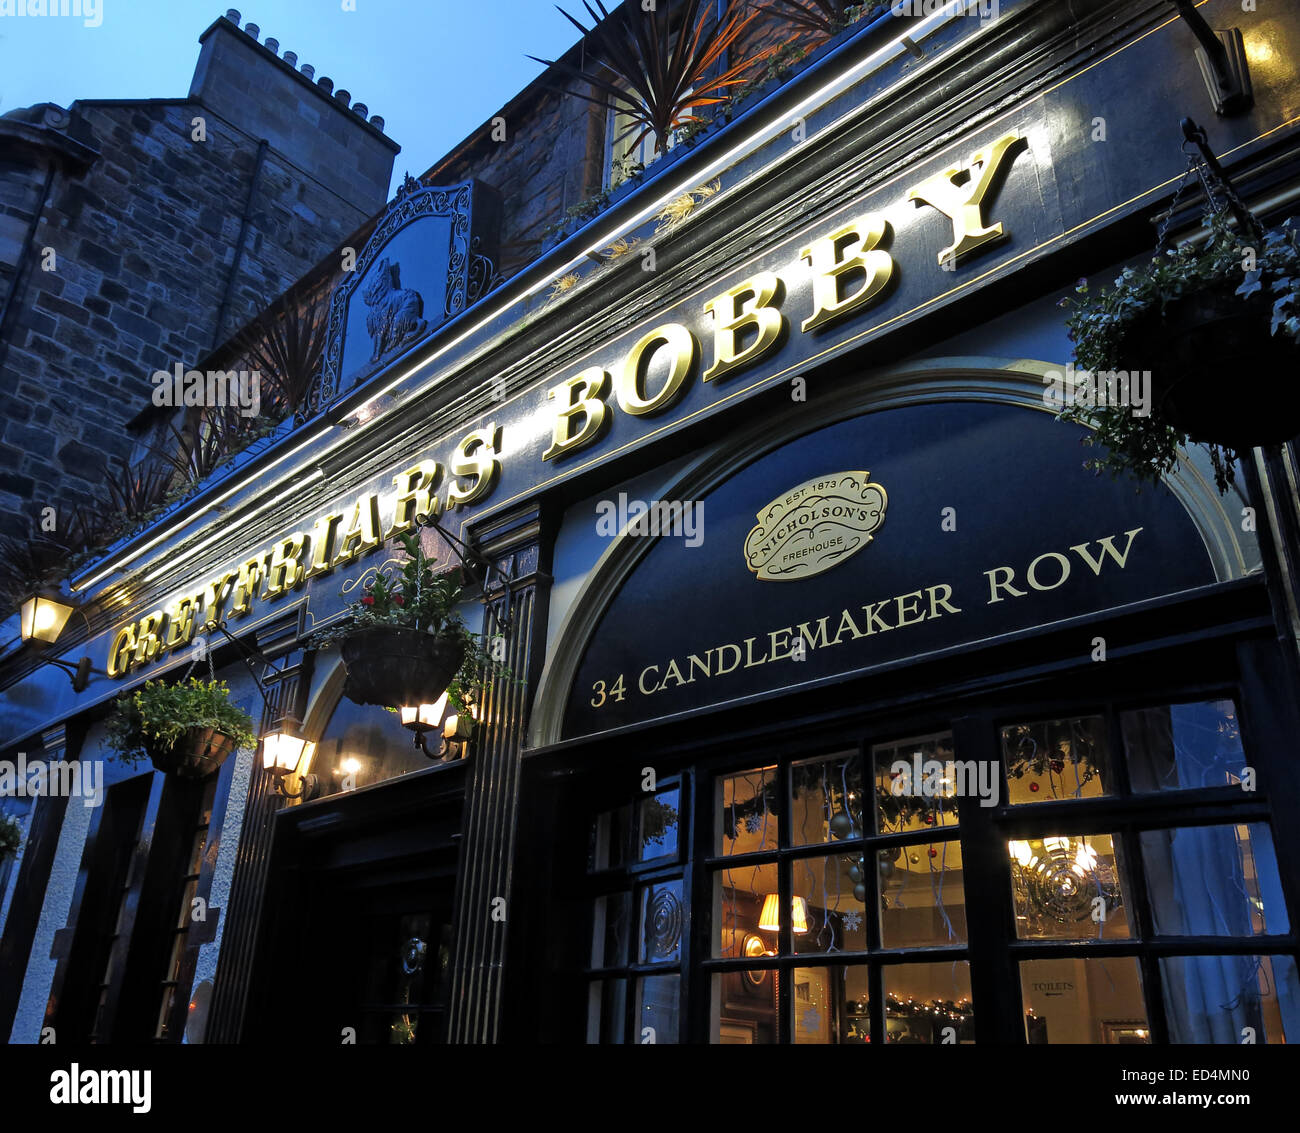 34,Candlemaker,Row,city,of,tourist,tourism,attraction,ale,house,alehouse,CAMRA,real,royal,companion,Old,Town,brass,Dog,outside,Lothians,Scotland,UK,Nicholson,freehouse,company,bar,Chambers,Street,Grassmarket,and,George,IV,Bridge,Georgian,houses,scruffy,Skye,terrier,EH12QE,EH1,2QE,front,GoTonySmith,bars,different,shot,of,near,graveyard,traditional